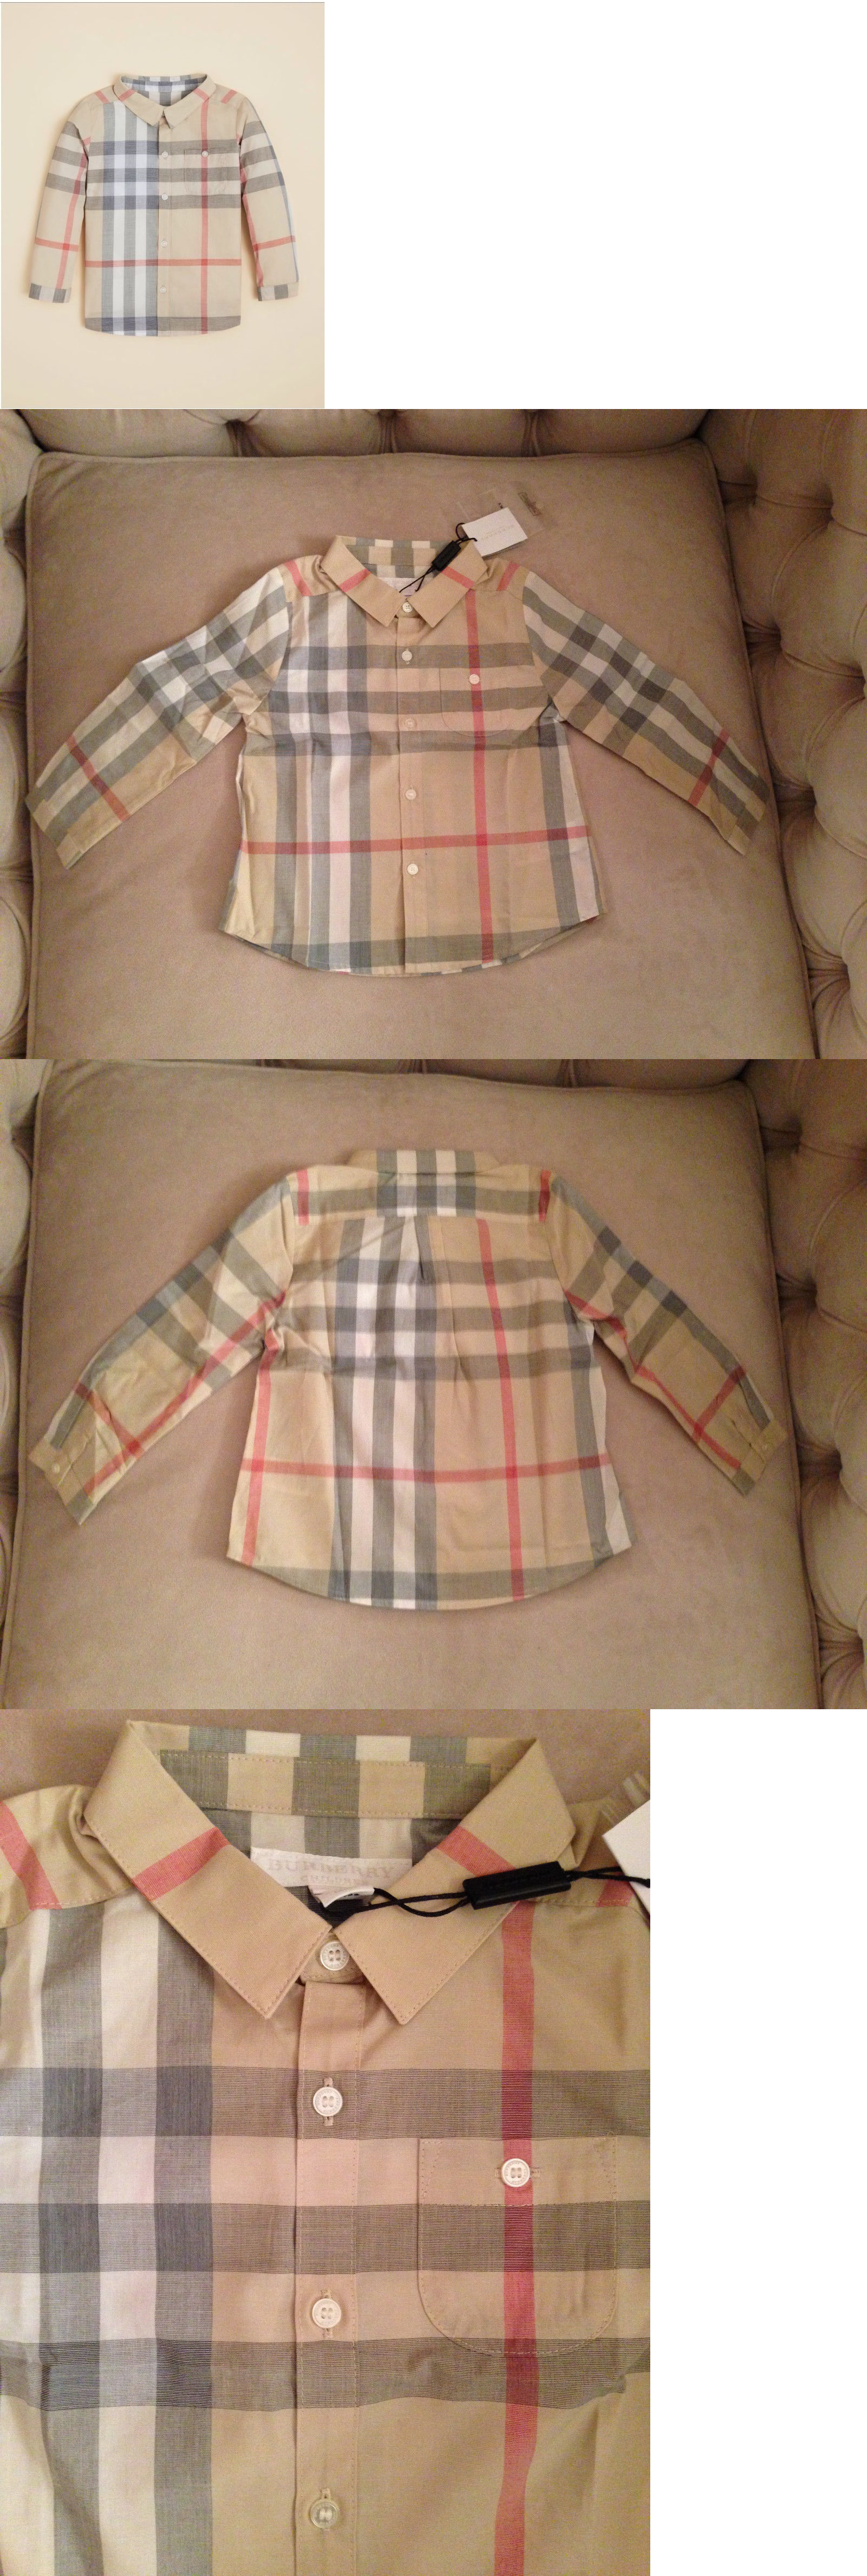 Baby Boys Clothing And Accessories Burberry Toddler Boys Trauls